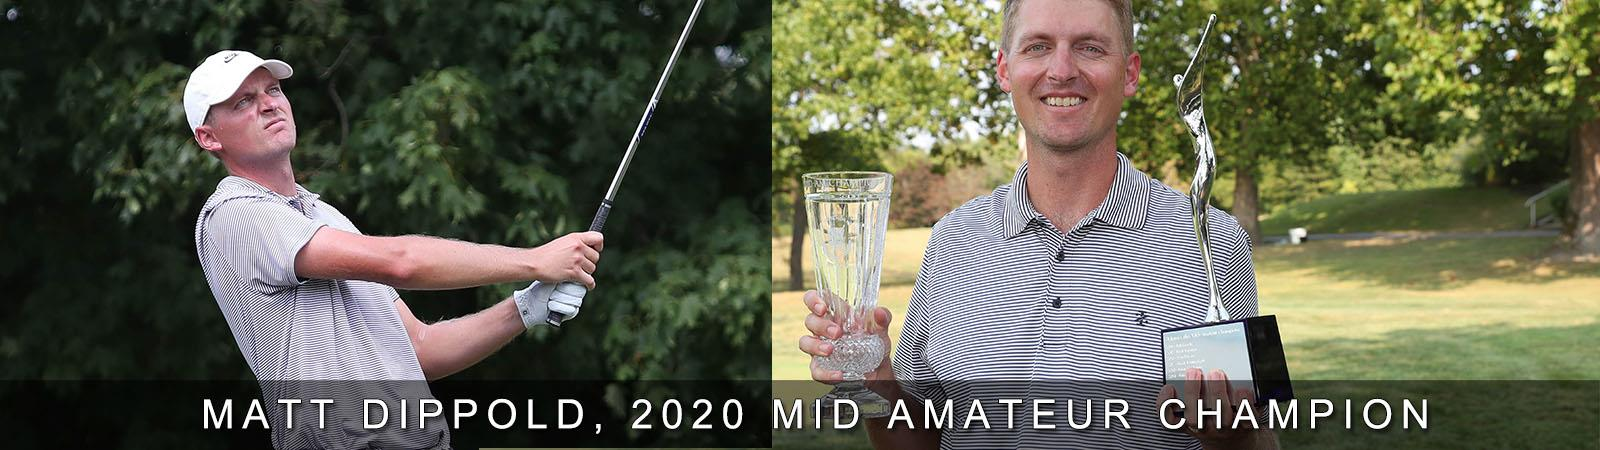 Matt_Dippold_Mid_Am_Champion_2020